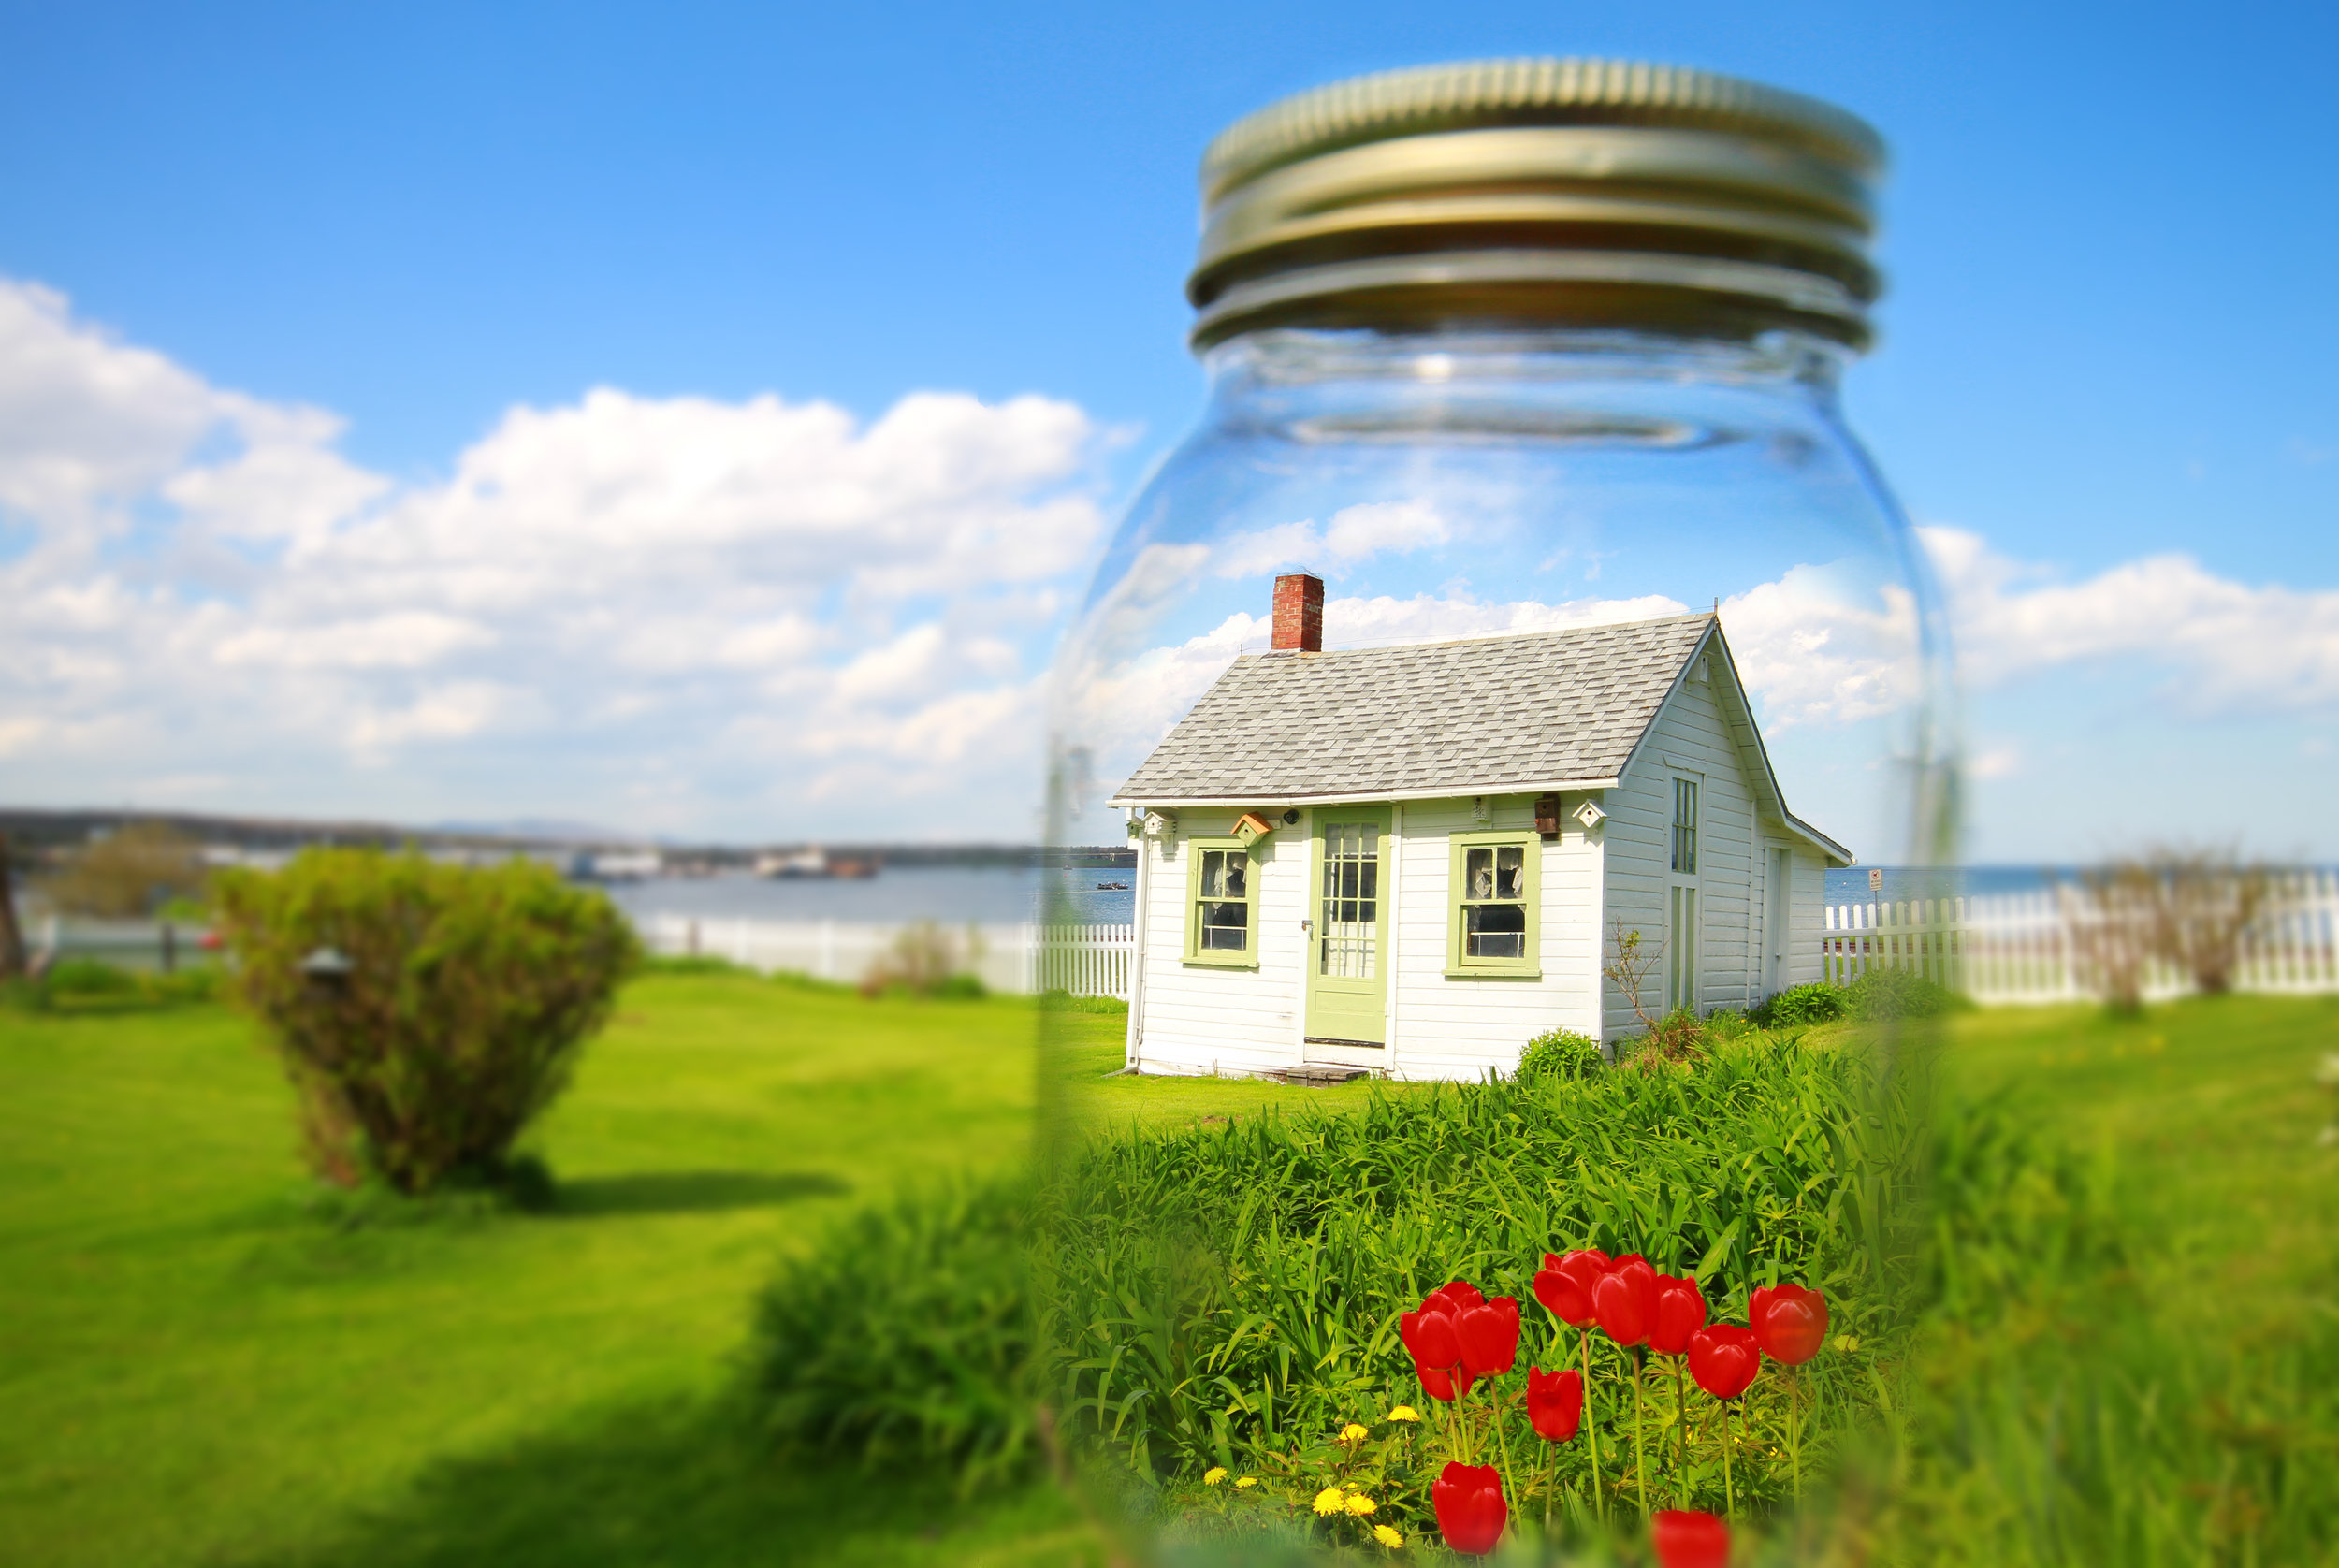 cottage-mason-jar.jpg